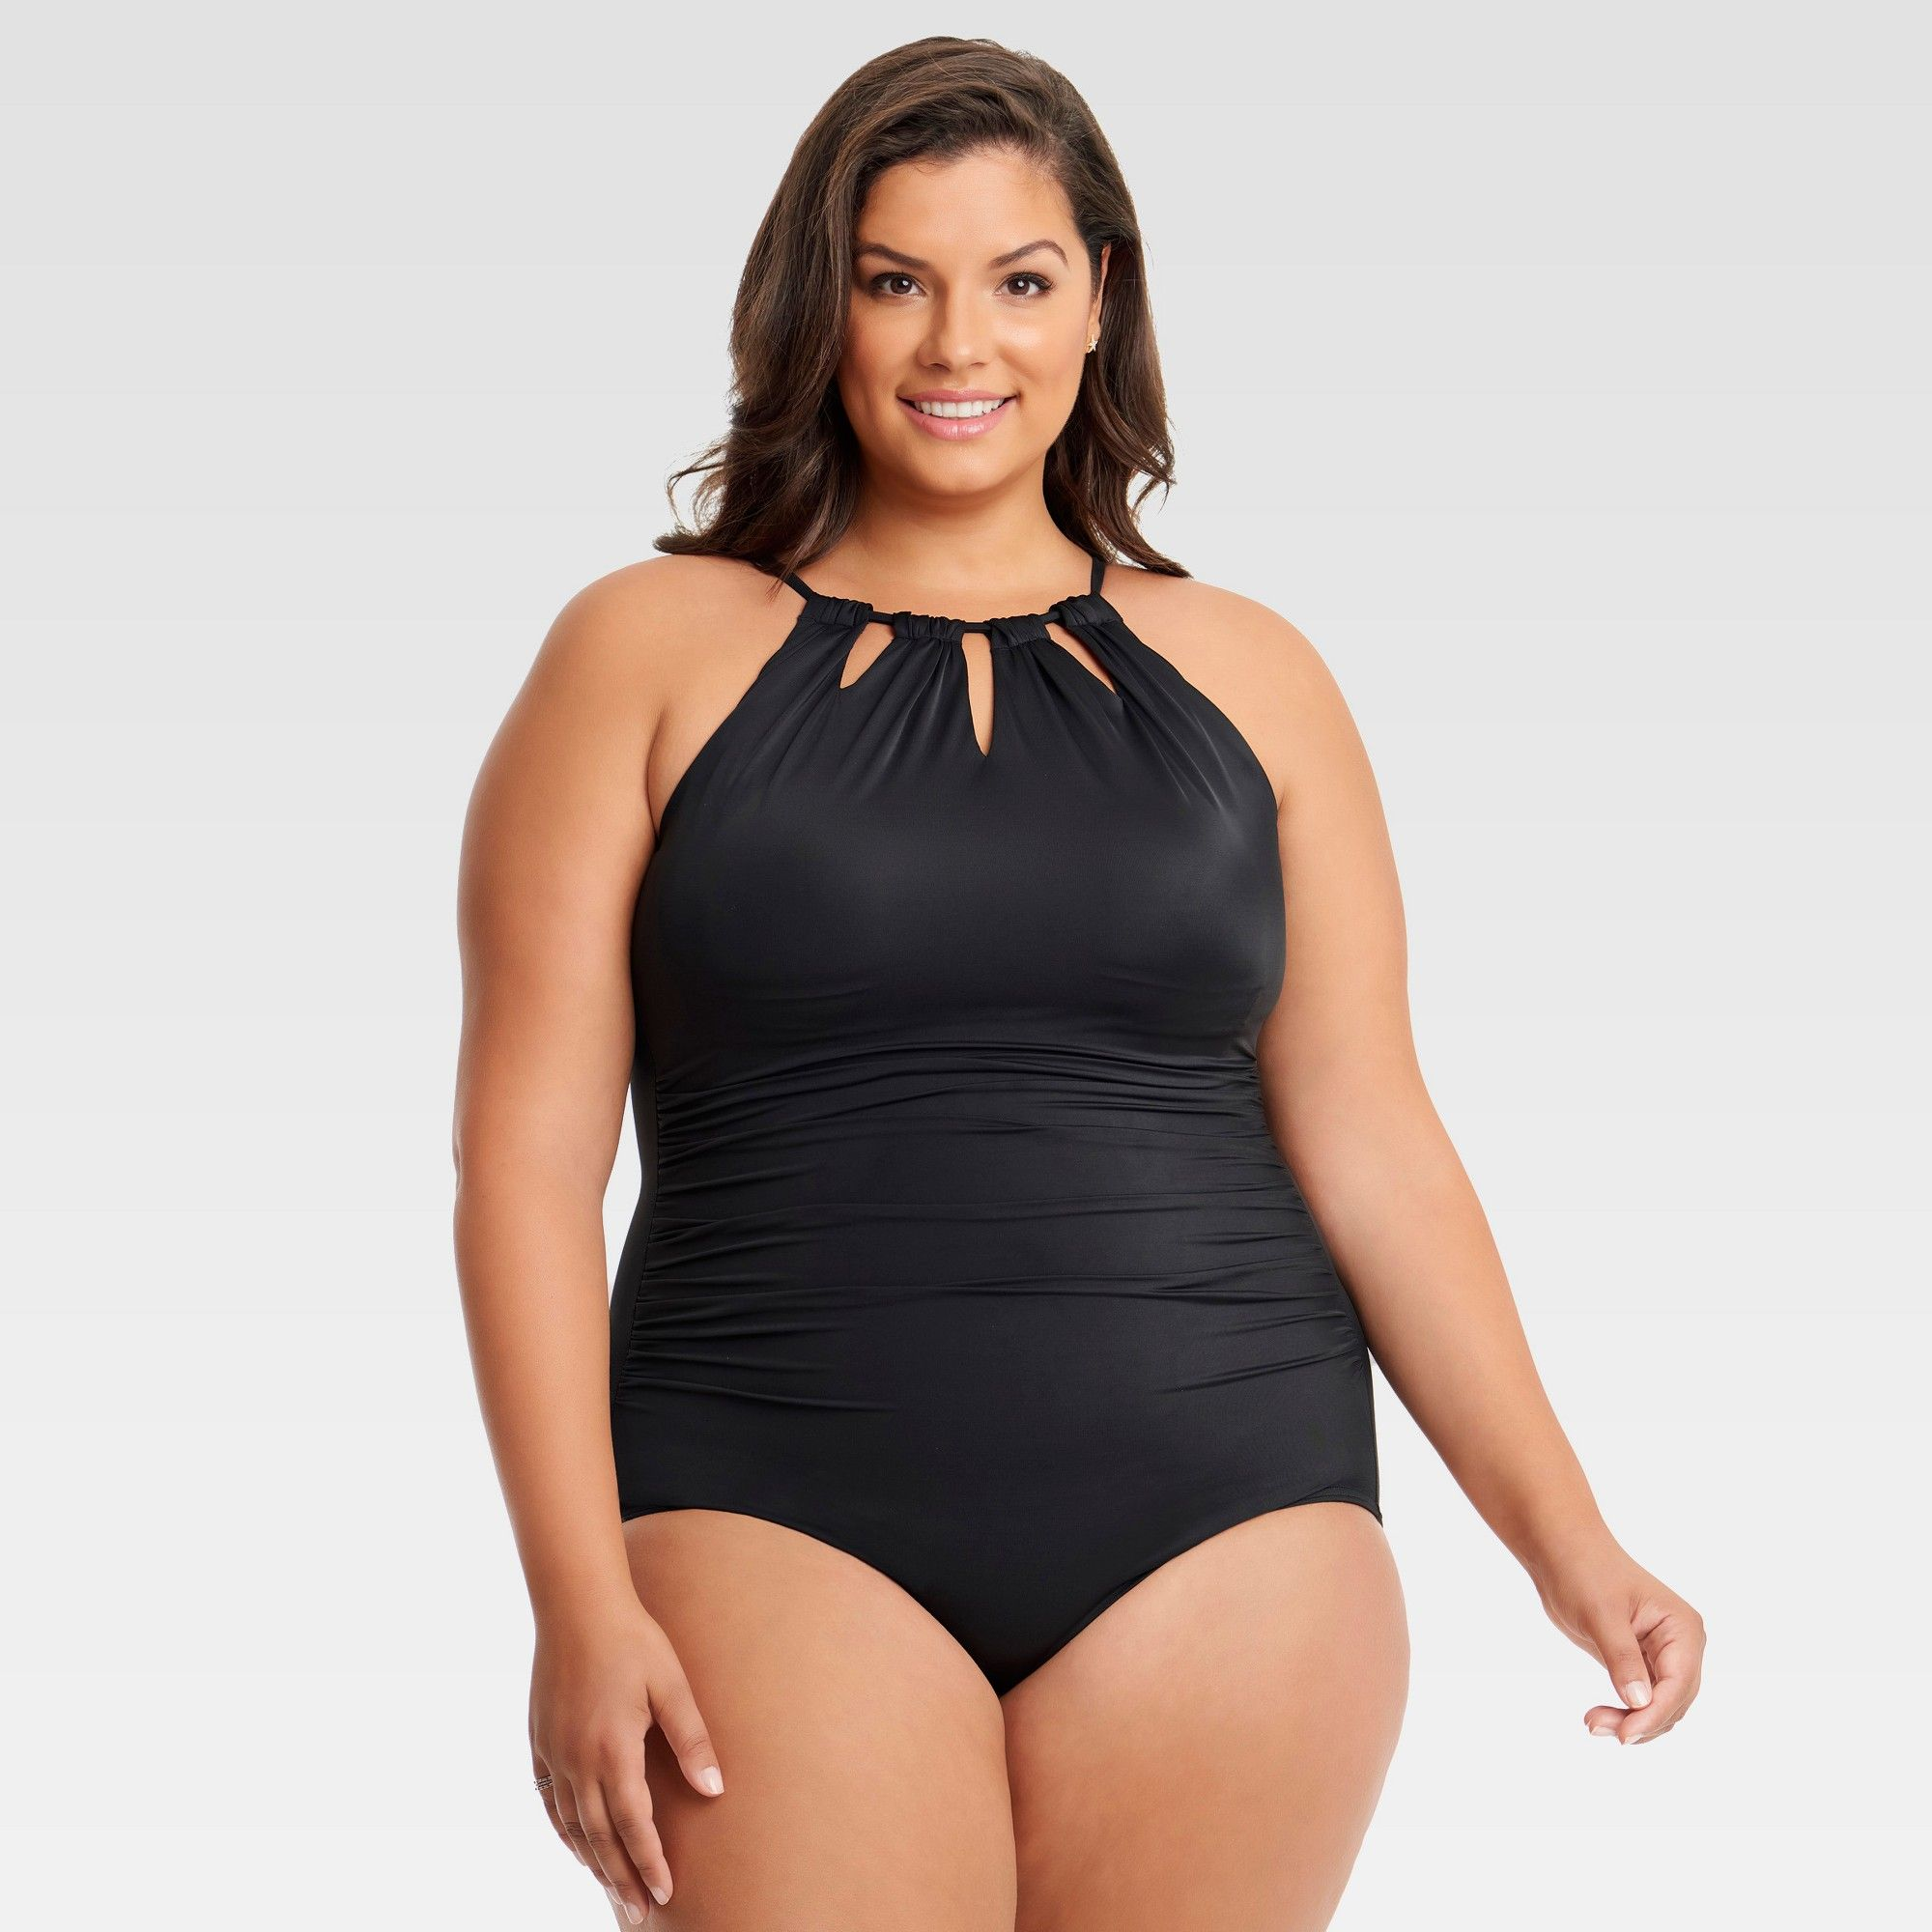 e17fe1bfef7f2 Plus Size Dreamsuit by Miracle Brands Women s Plus Slimming Control Cut Out One  Piece Swimsuit - Black 16W